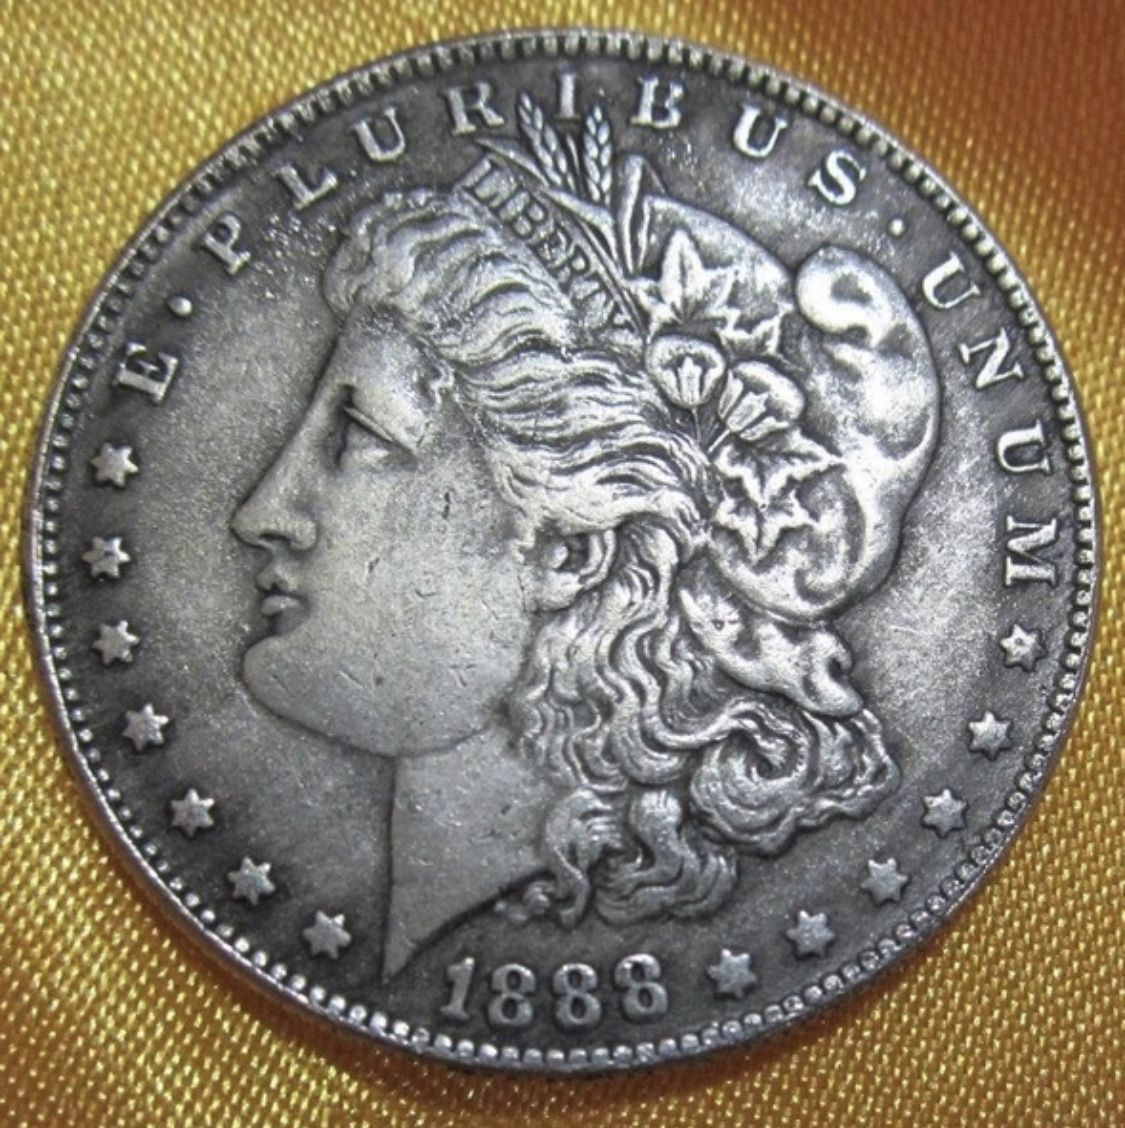 Pin By Knife Art Store On American 1 Dollar Silver Coin Currency Morgan Antique Commemorative Cellectible Coins Old Silver Coins Silver Coins Coins